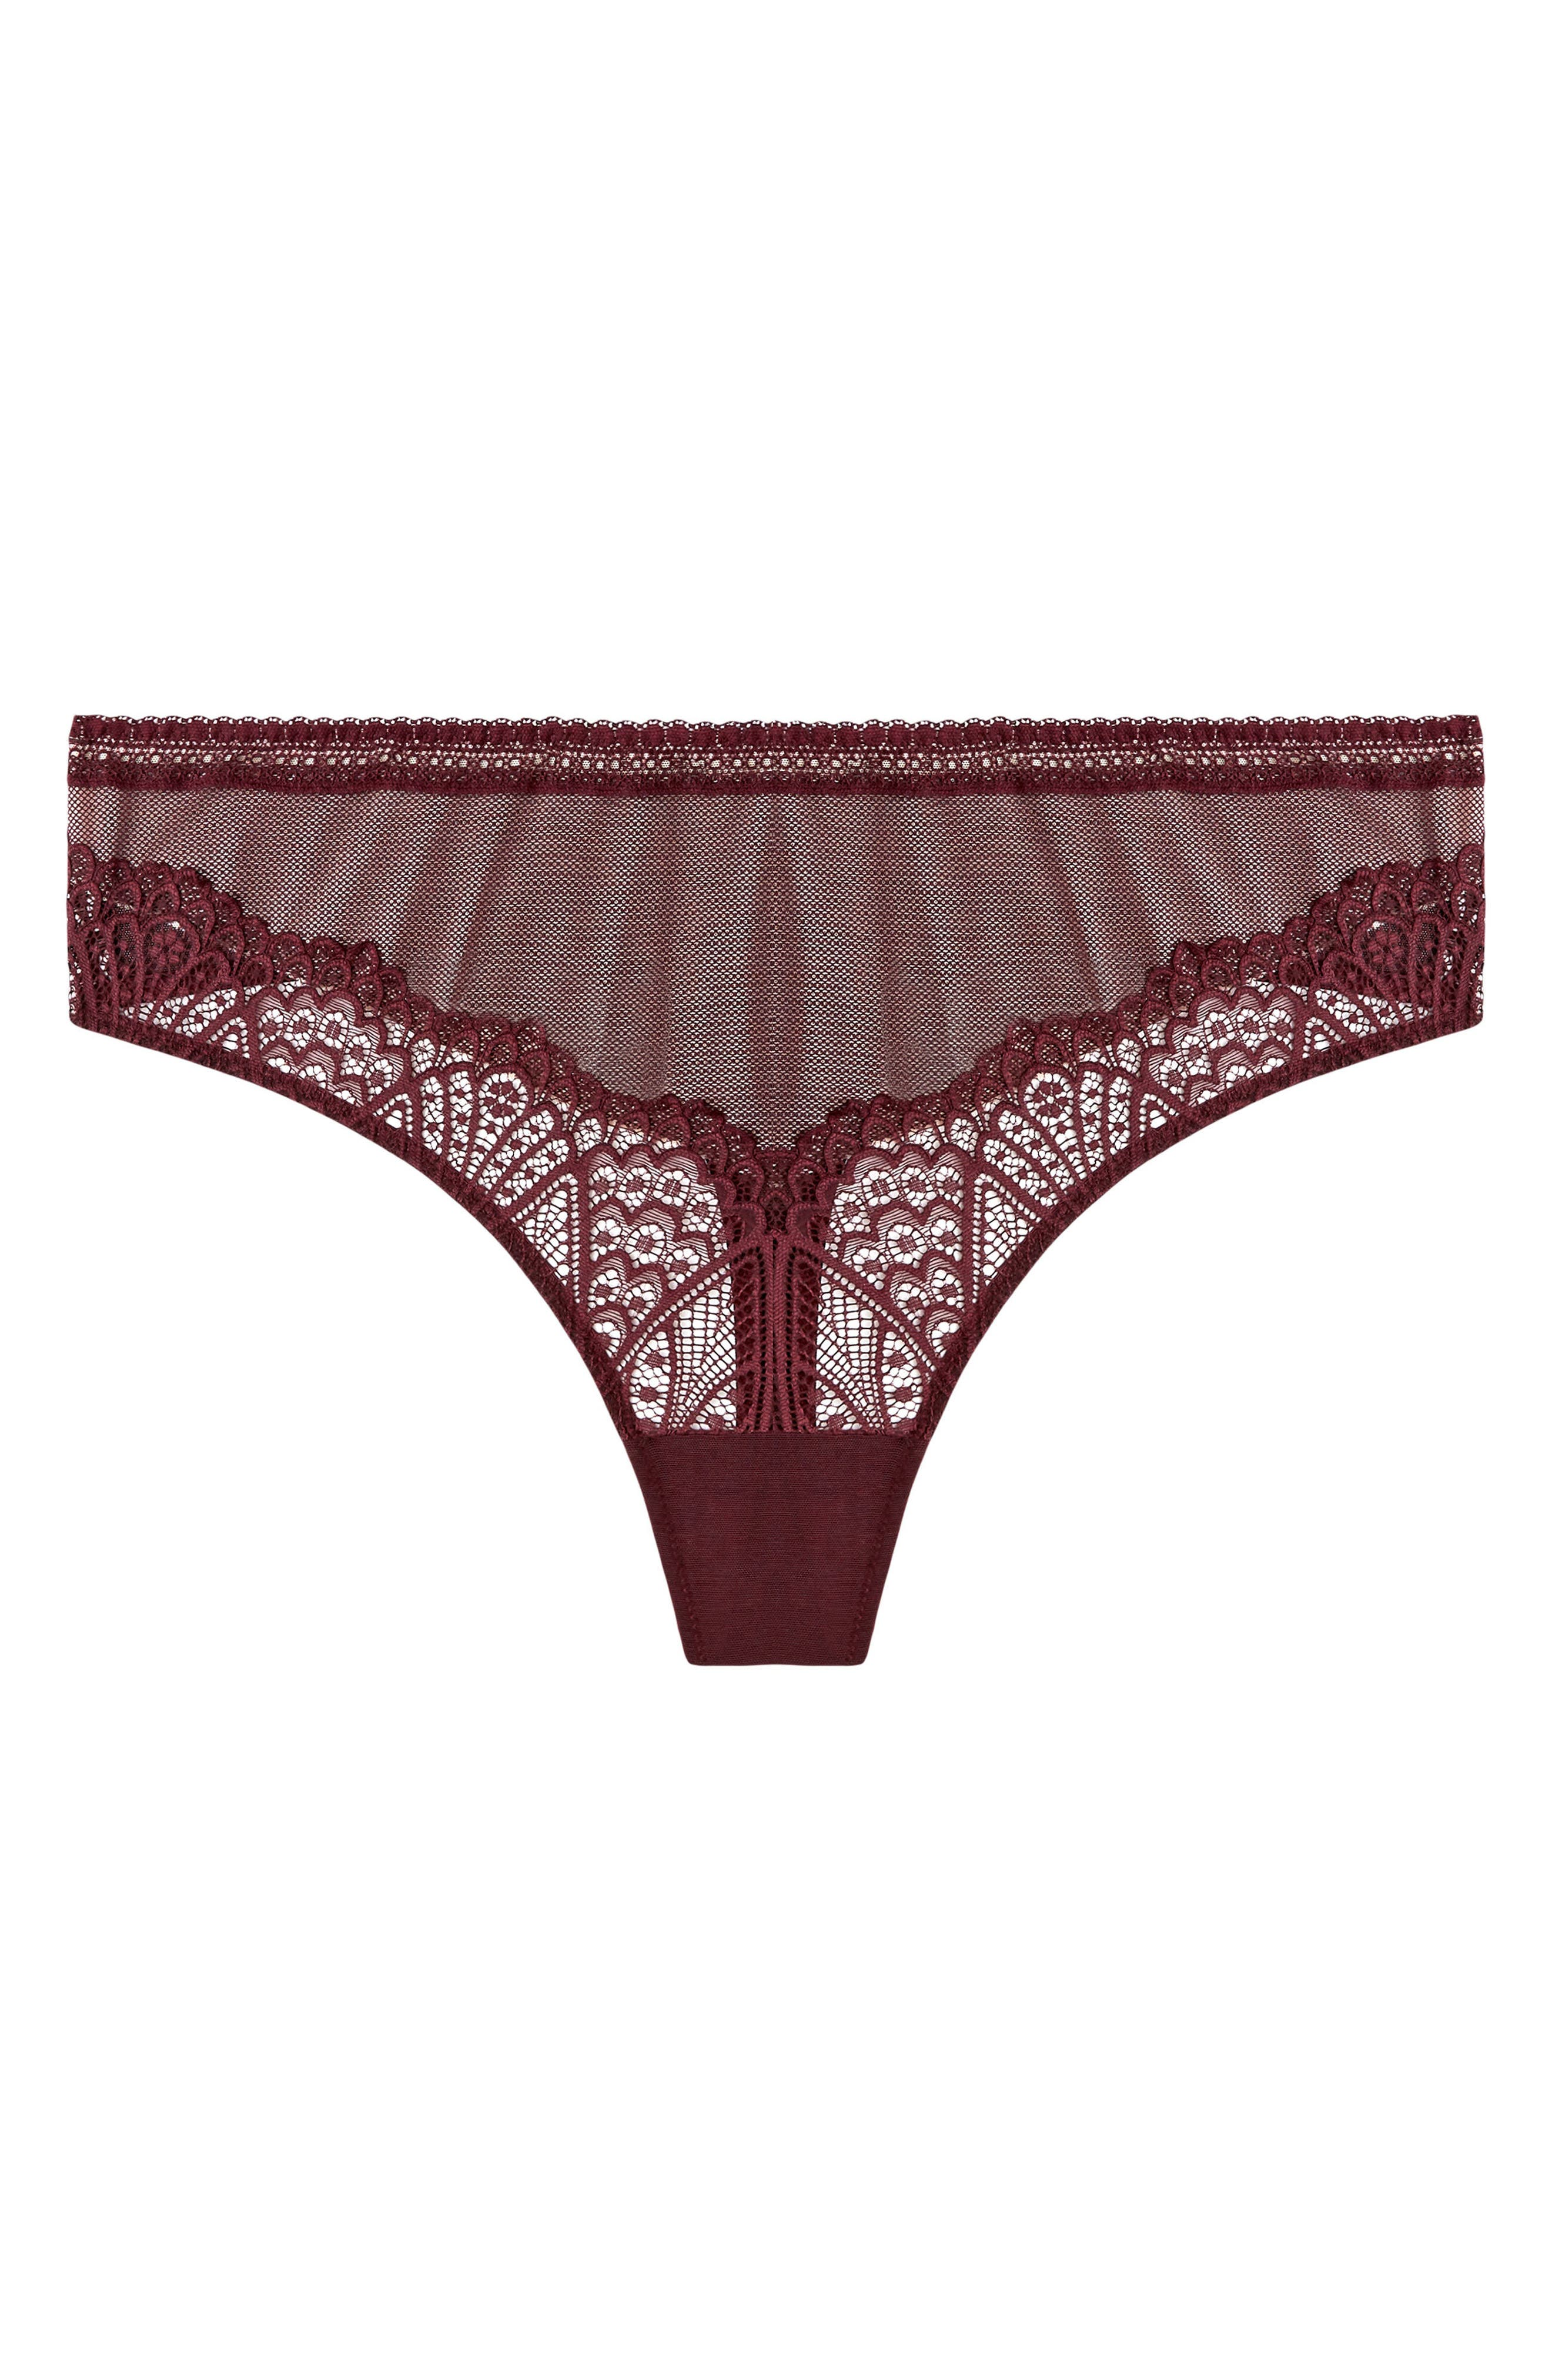 City Chic Darcy Thong (Plus Size)